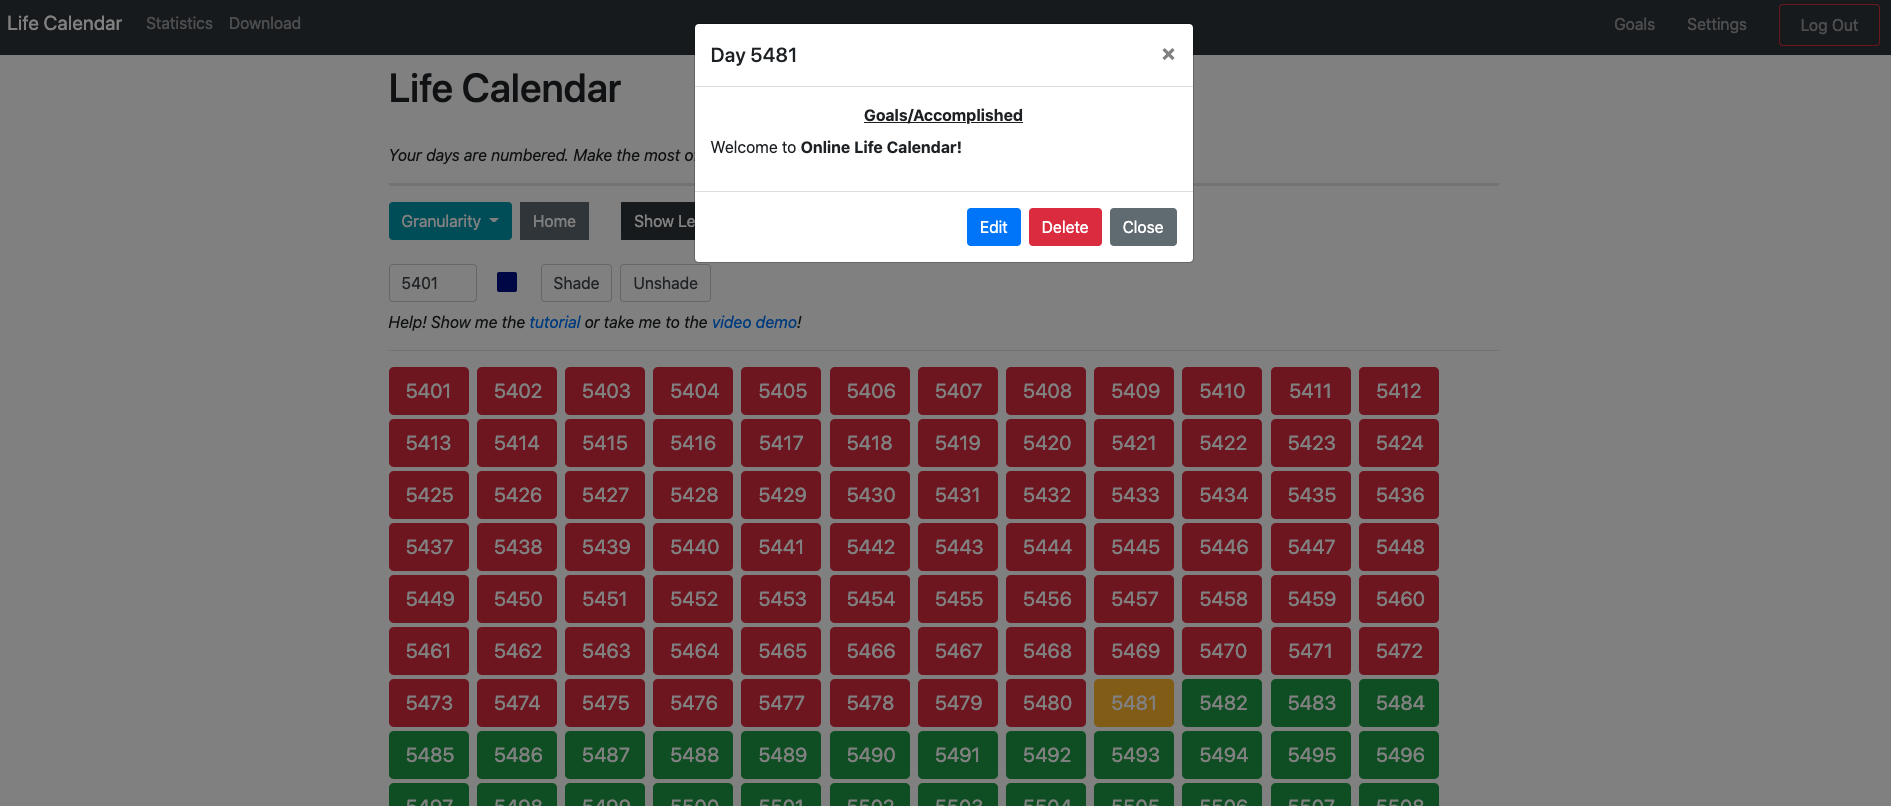 homepage screenshot of Online Life Calendar